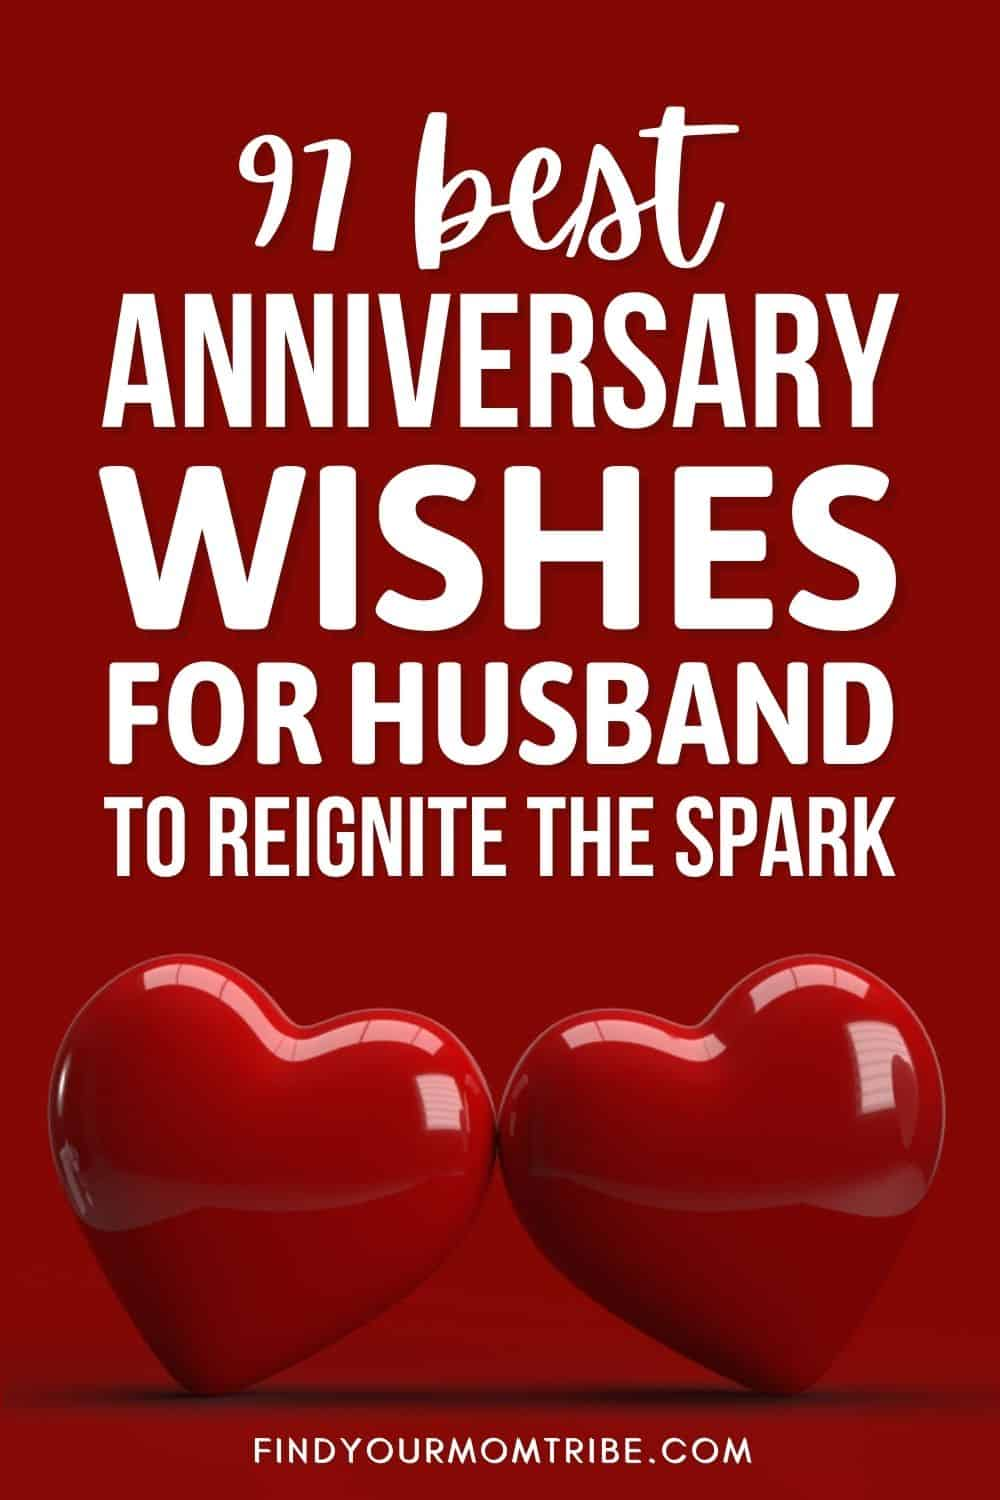 Best Anniversary Wishes For Husband To Reignite The Spark Pinterest